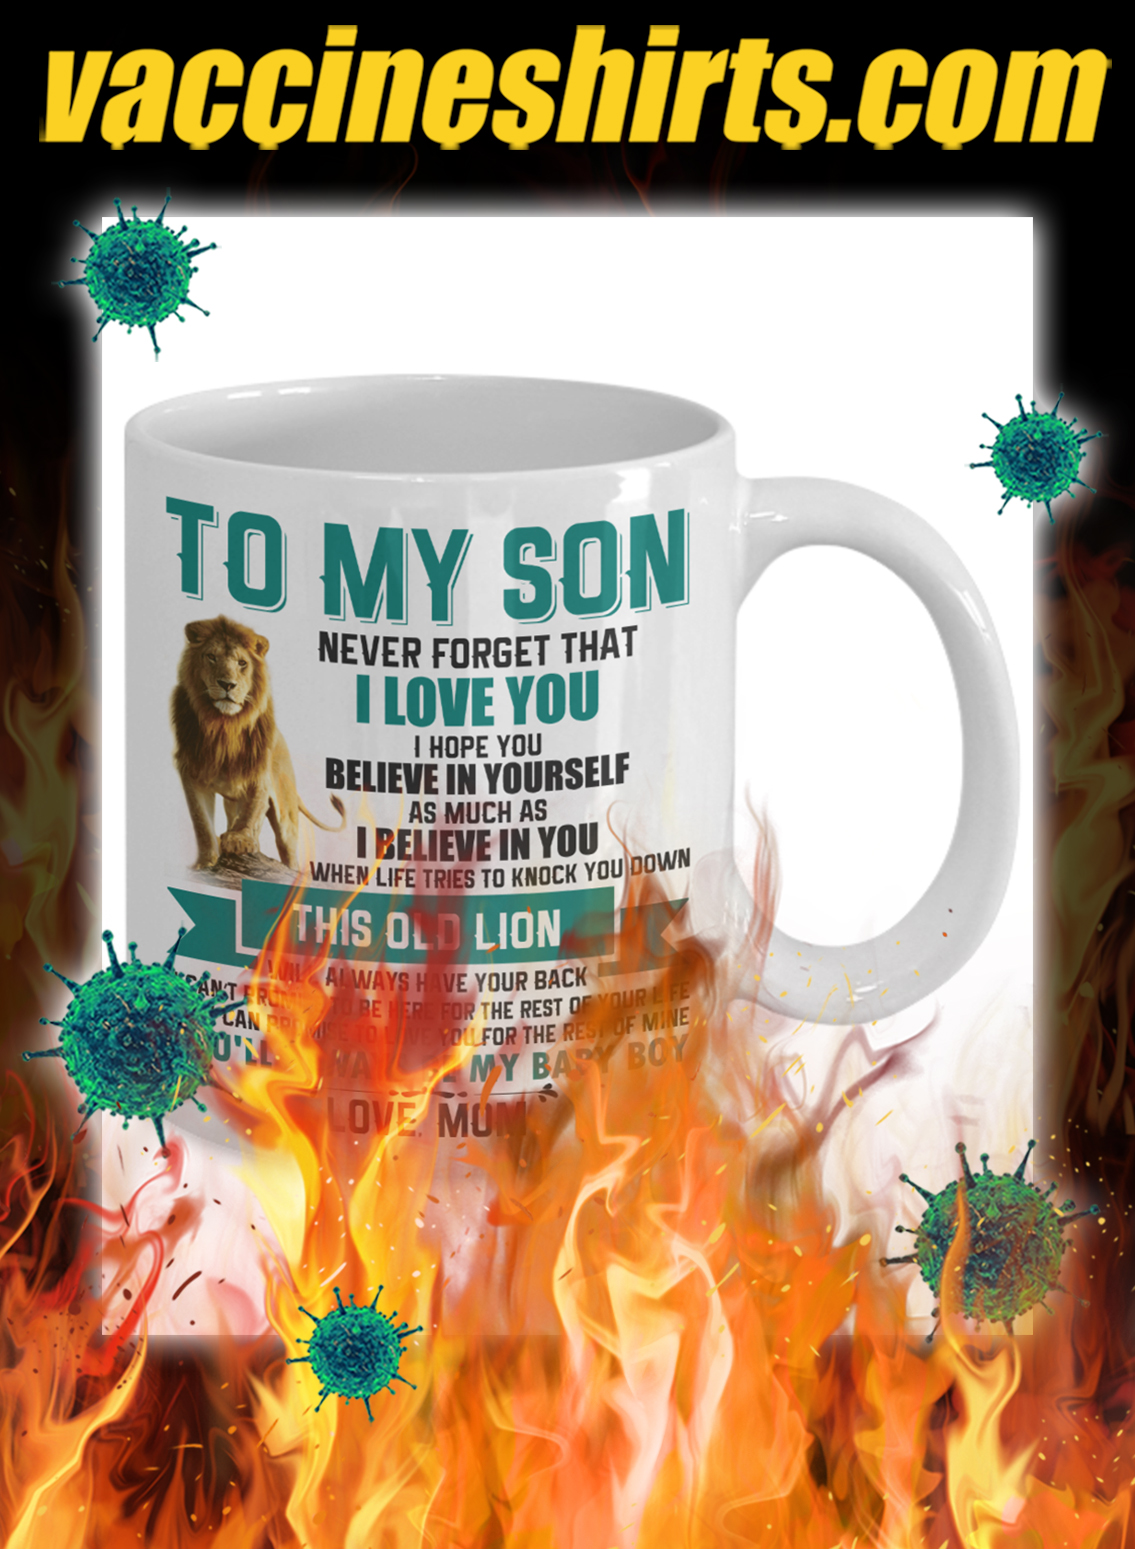 Lion to my son never forget that i love you mug- pic 1